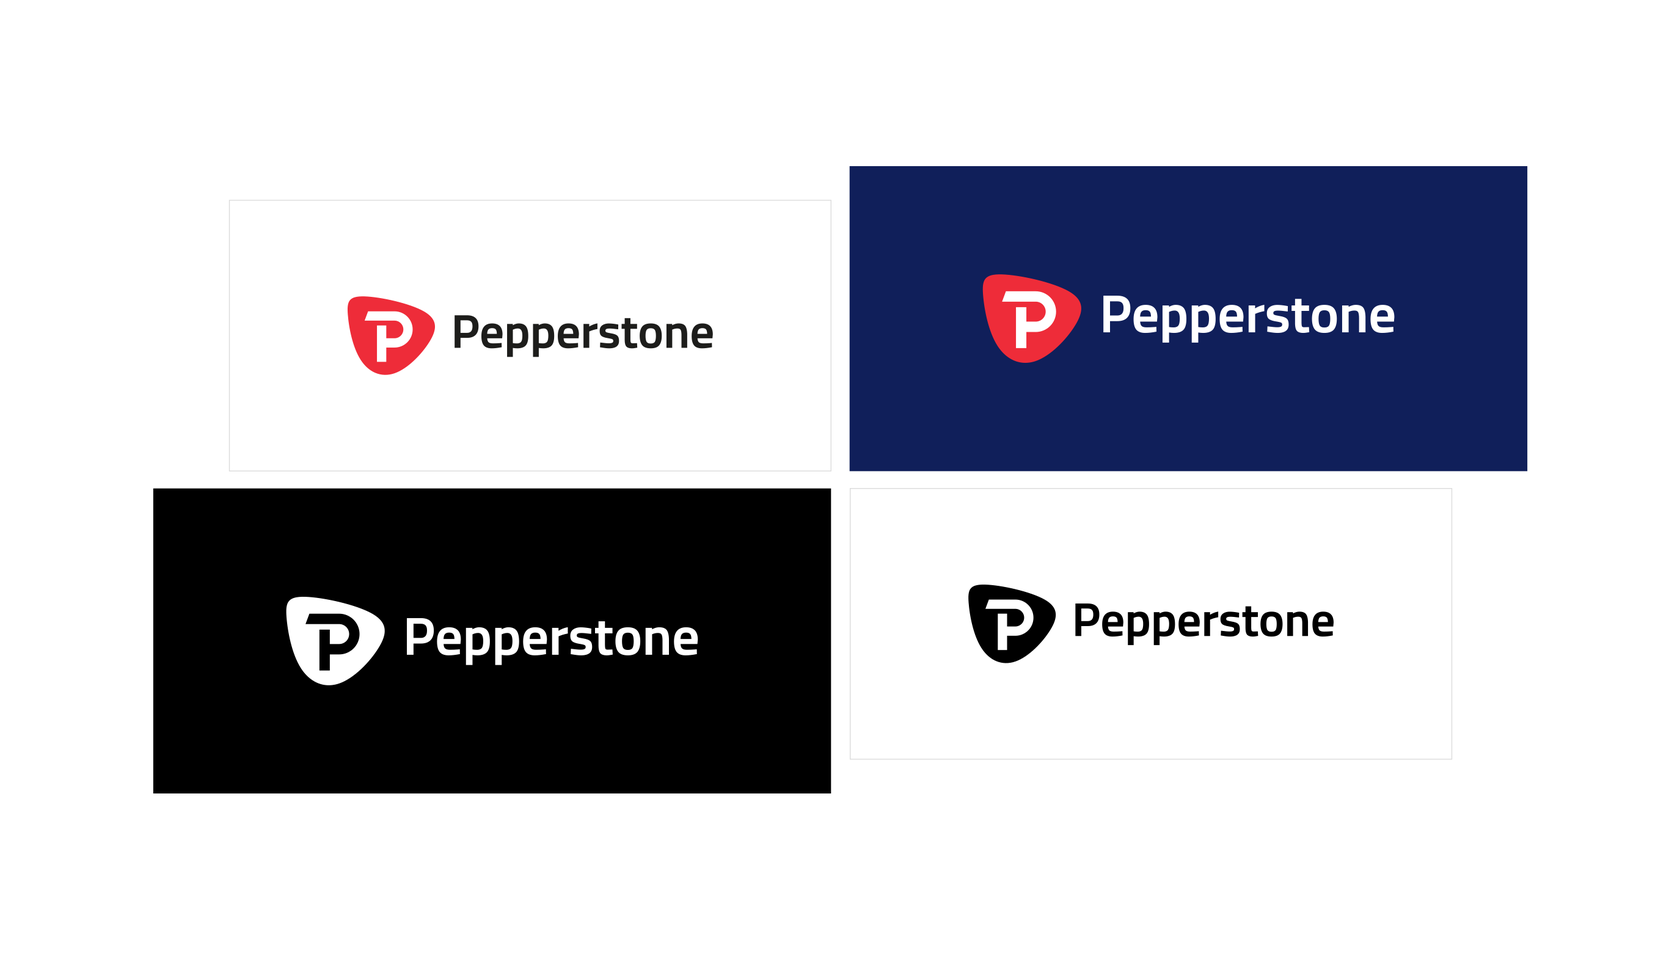 Pepperstone logo versions